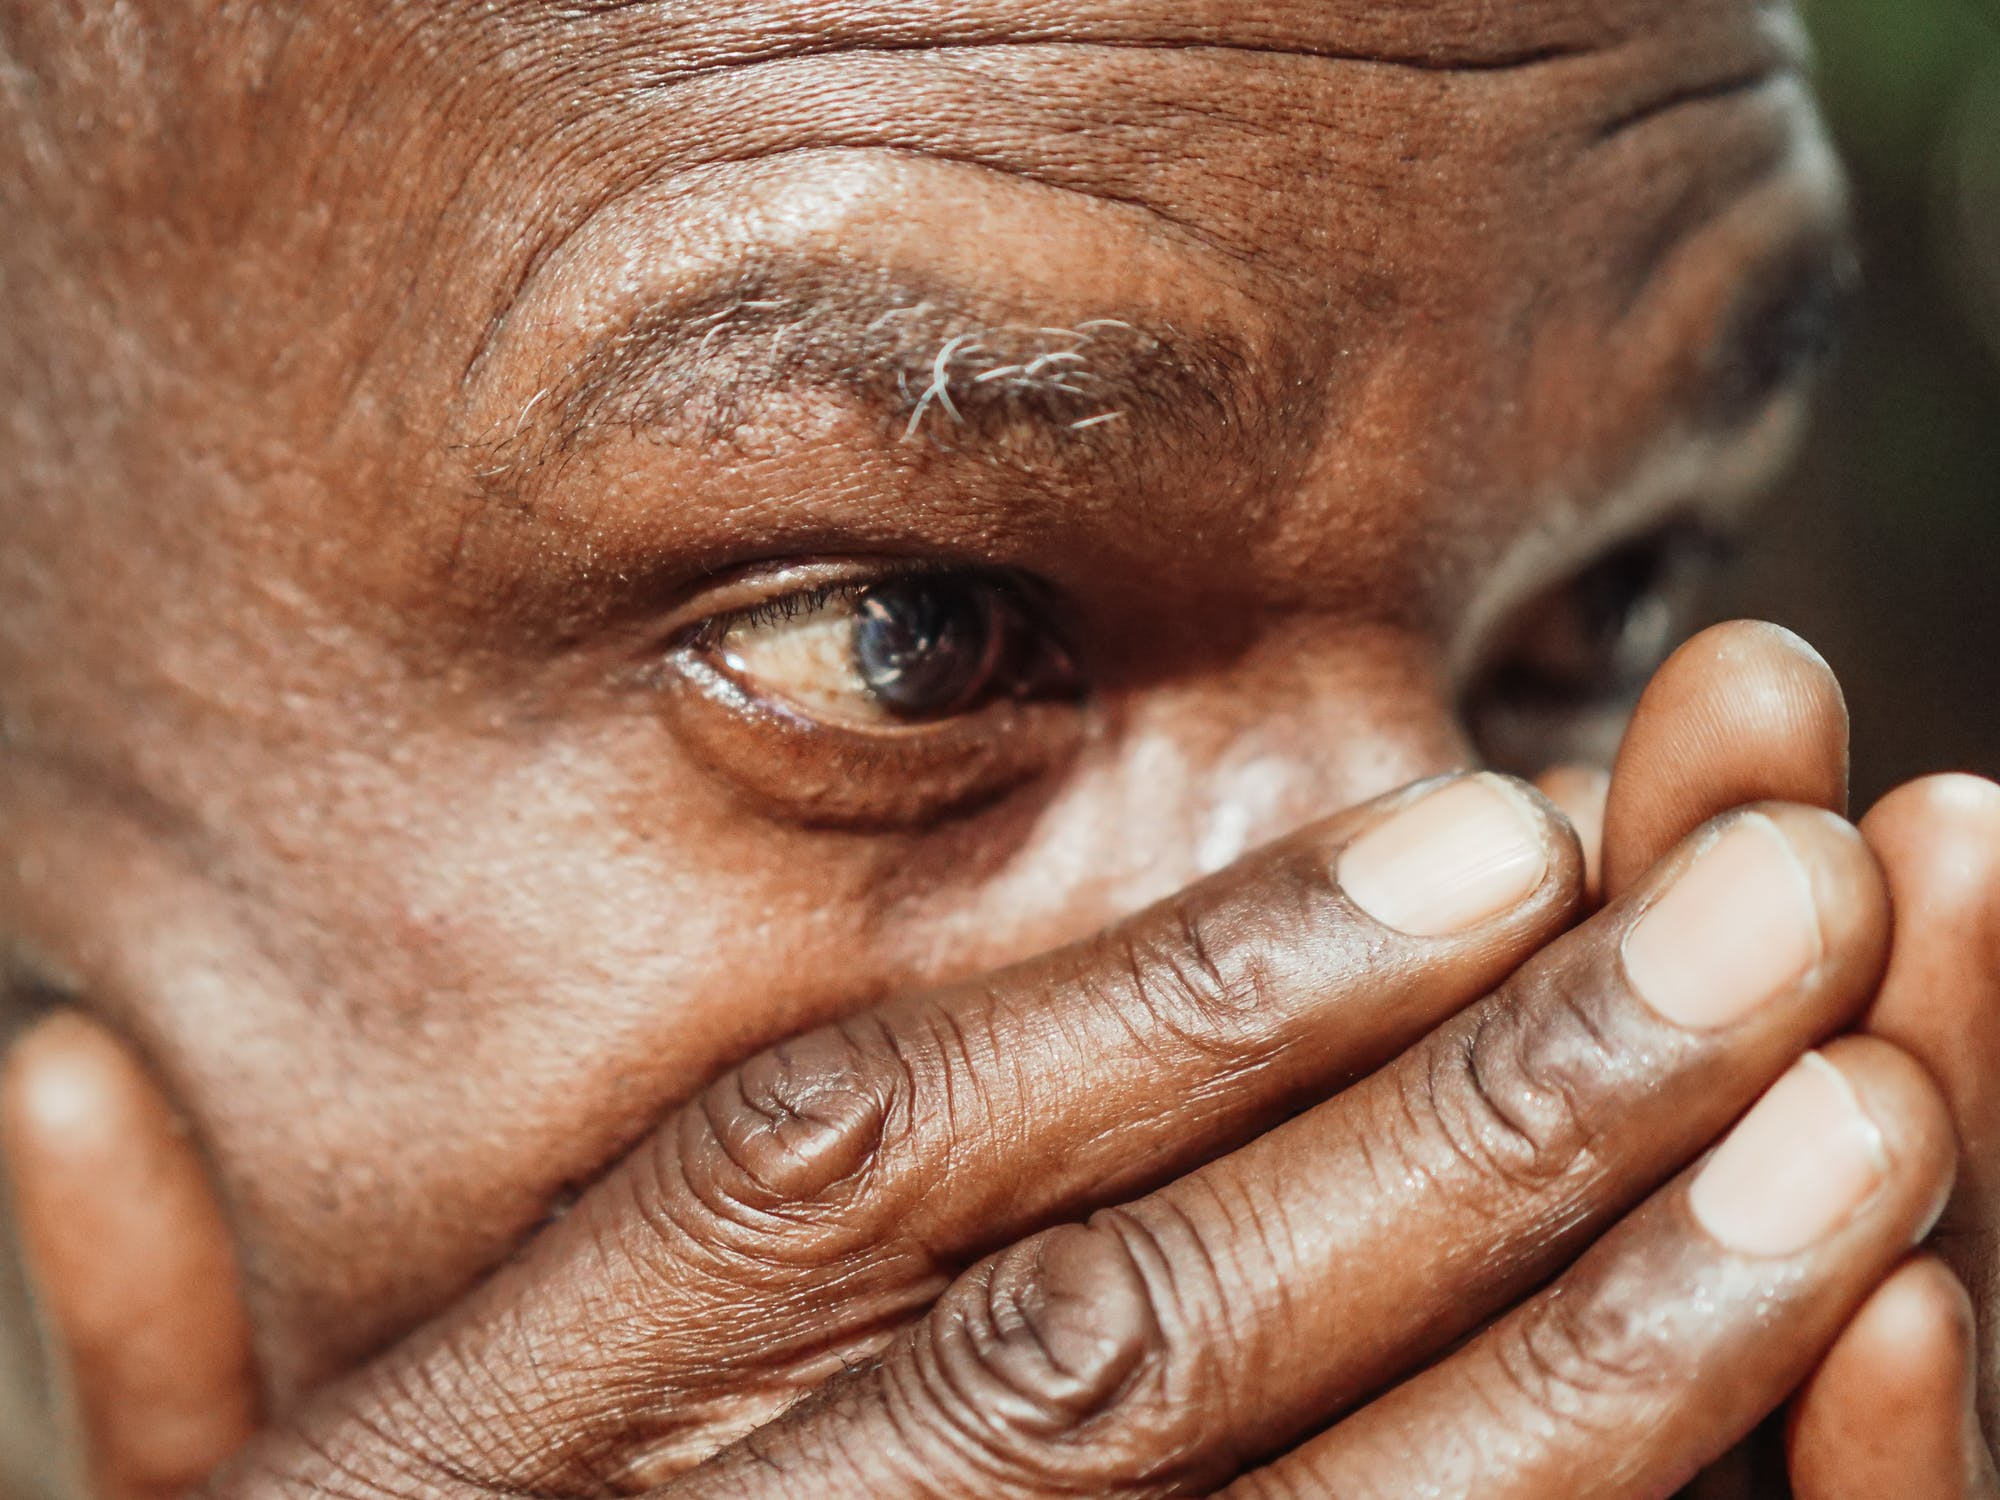 A close up on a man's eyes as he covers is nose and mouth with his hands. Photo used courtesy of Pexels.com.